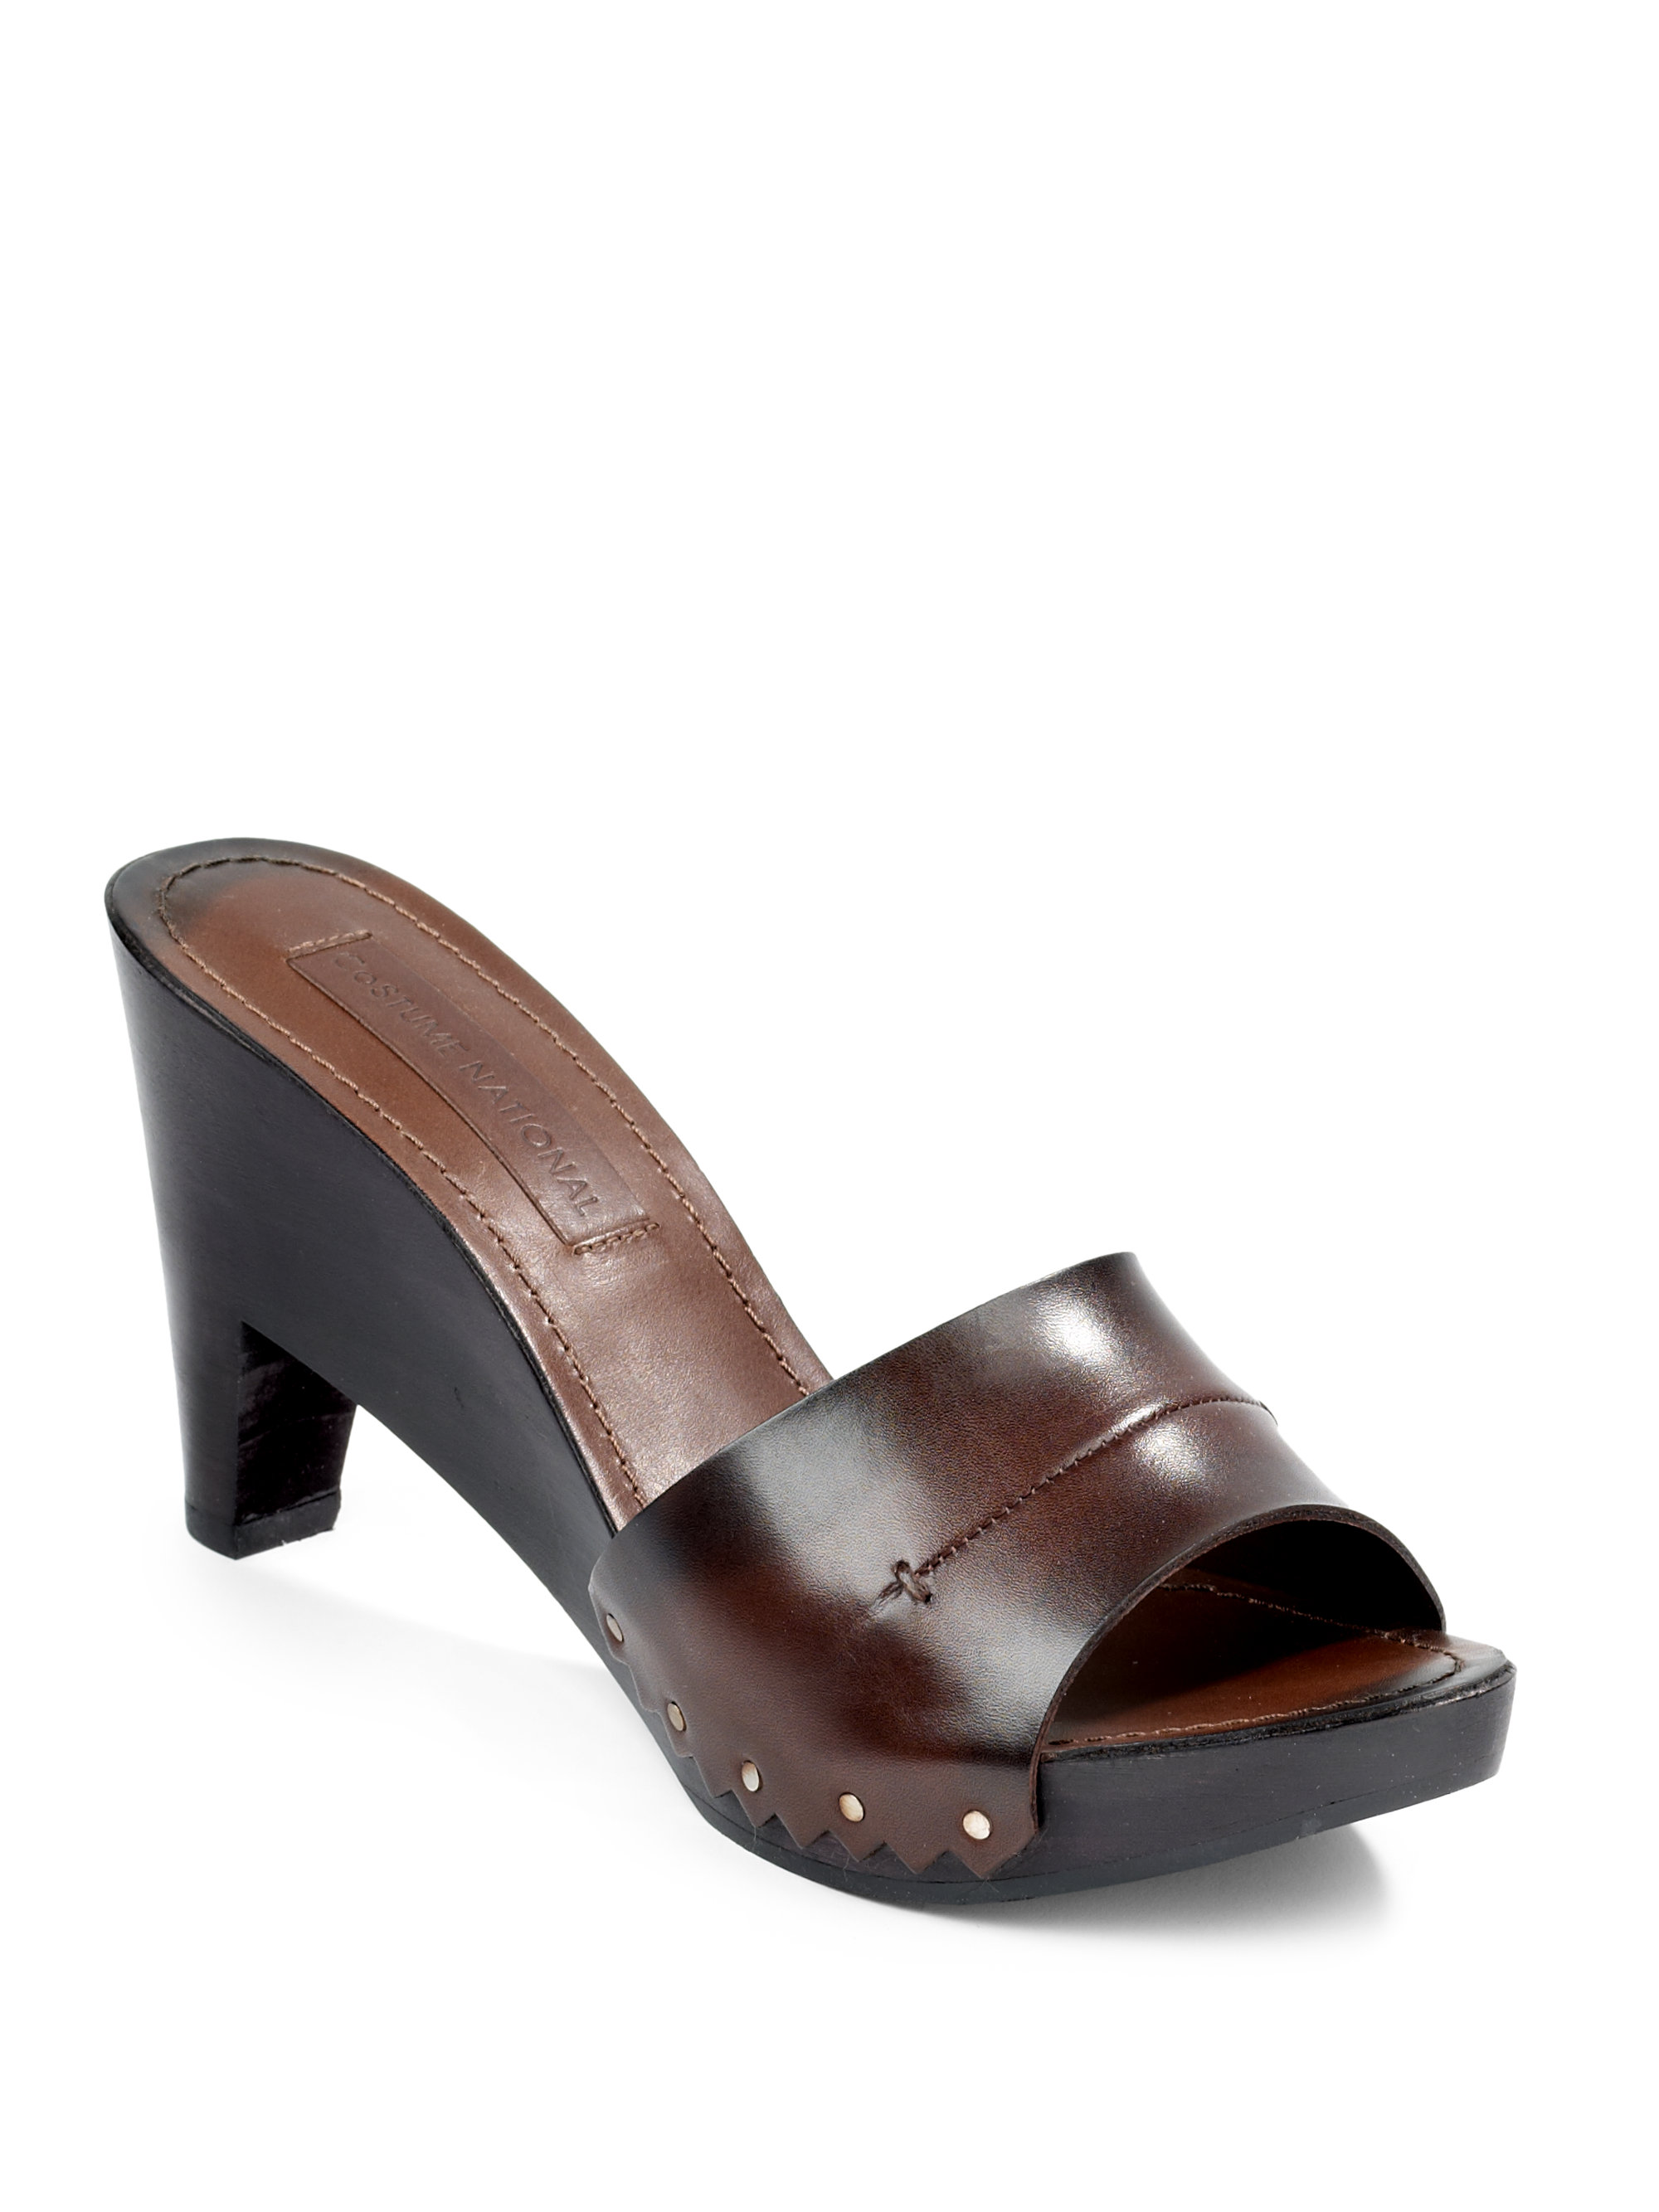 Costume National Stud Leather Wood Clog Sandals In Brown